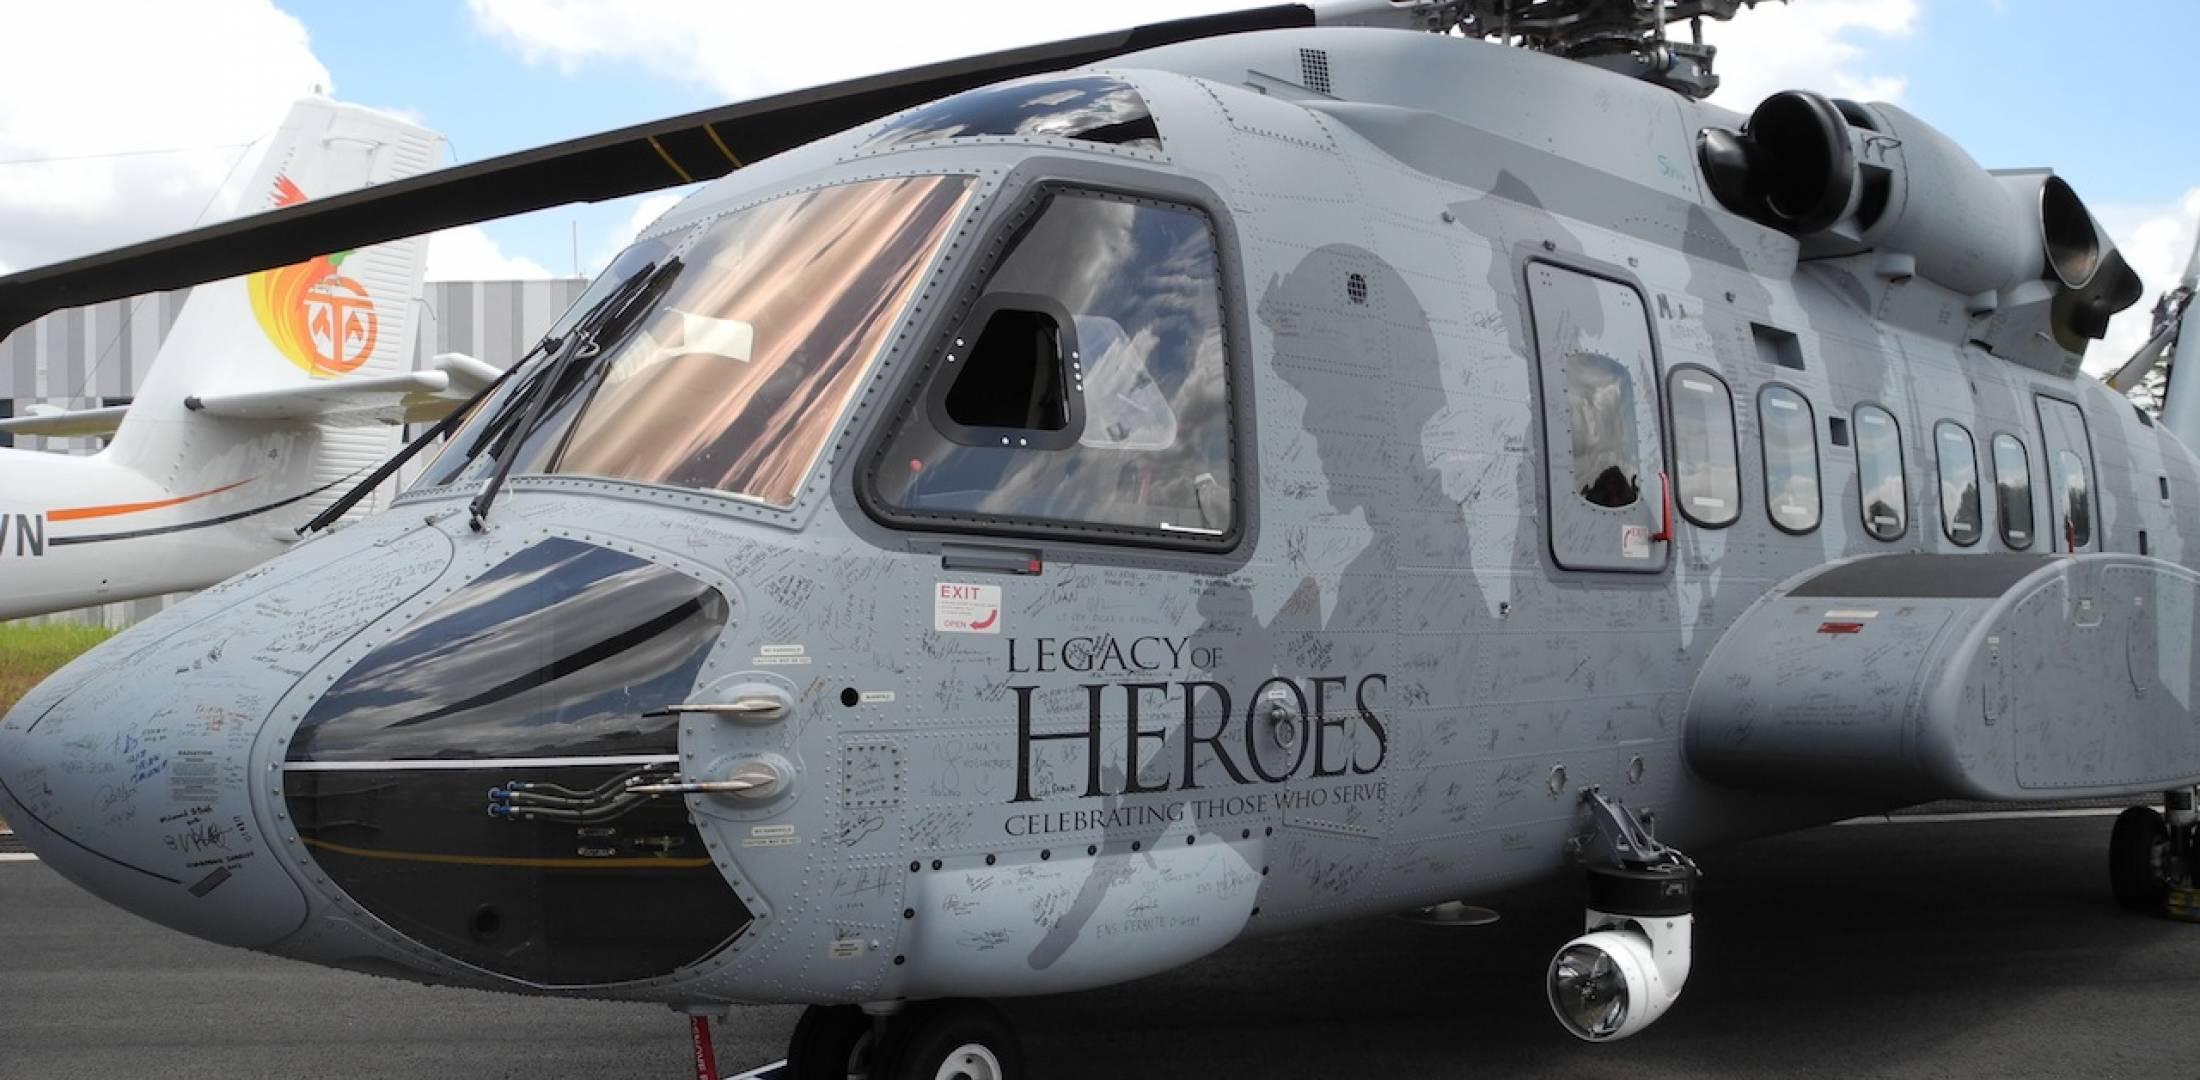 Sikorsky S-92 Legacy of Heroes tour